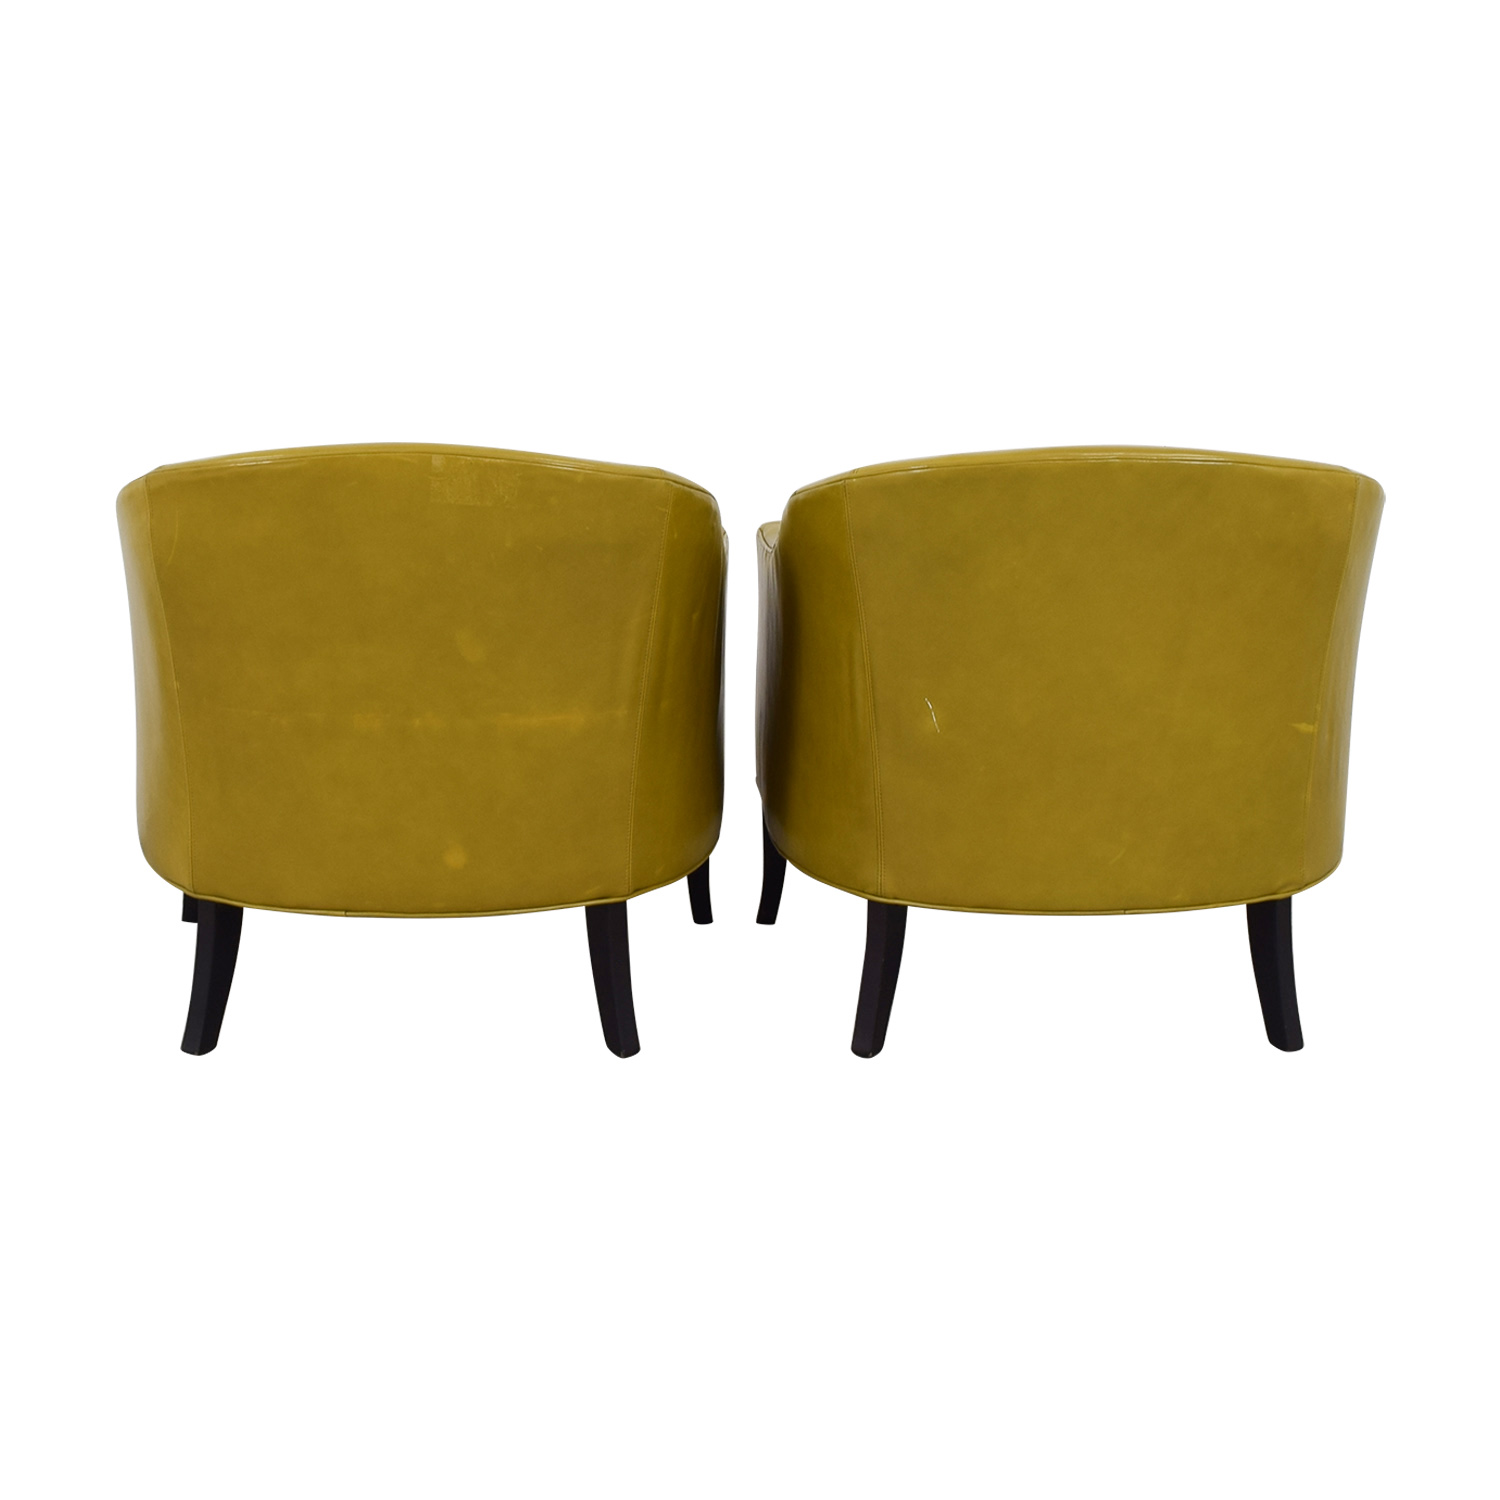 Crate & Barrel Lemon Green Leather Side Chairs / Accent Chairs